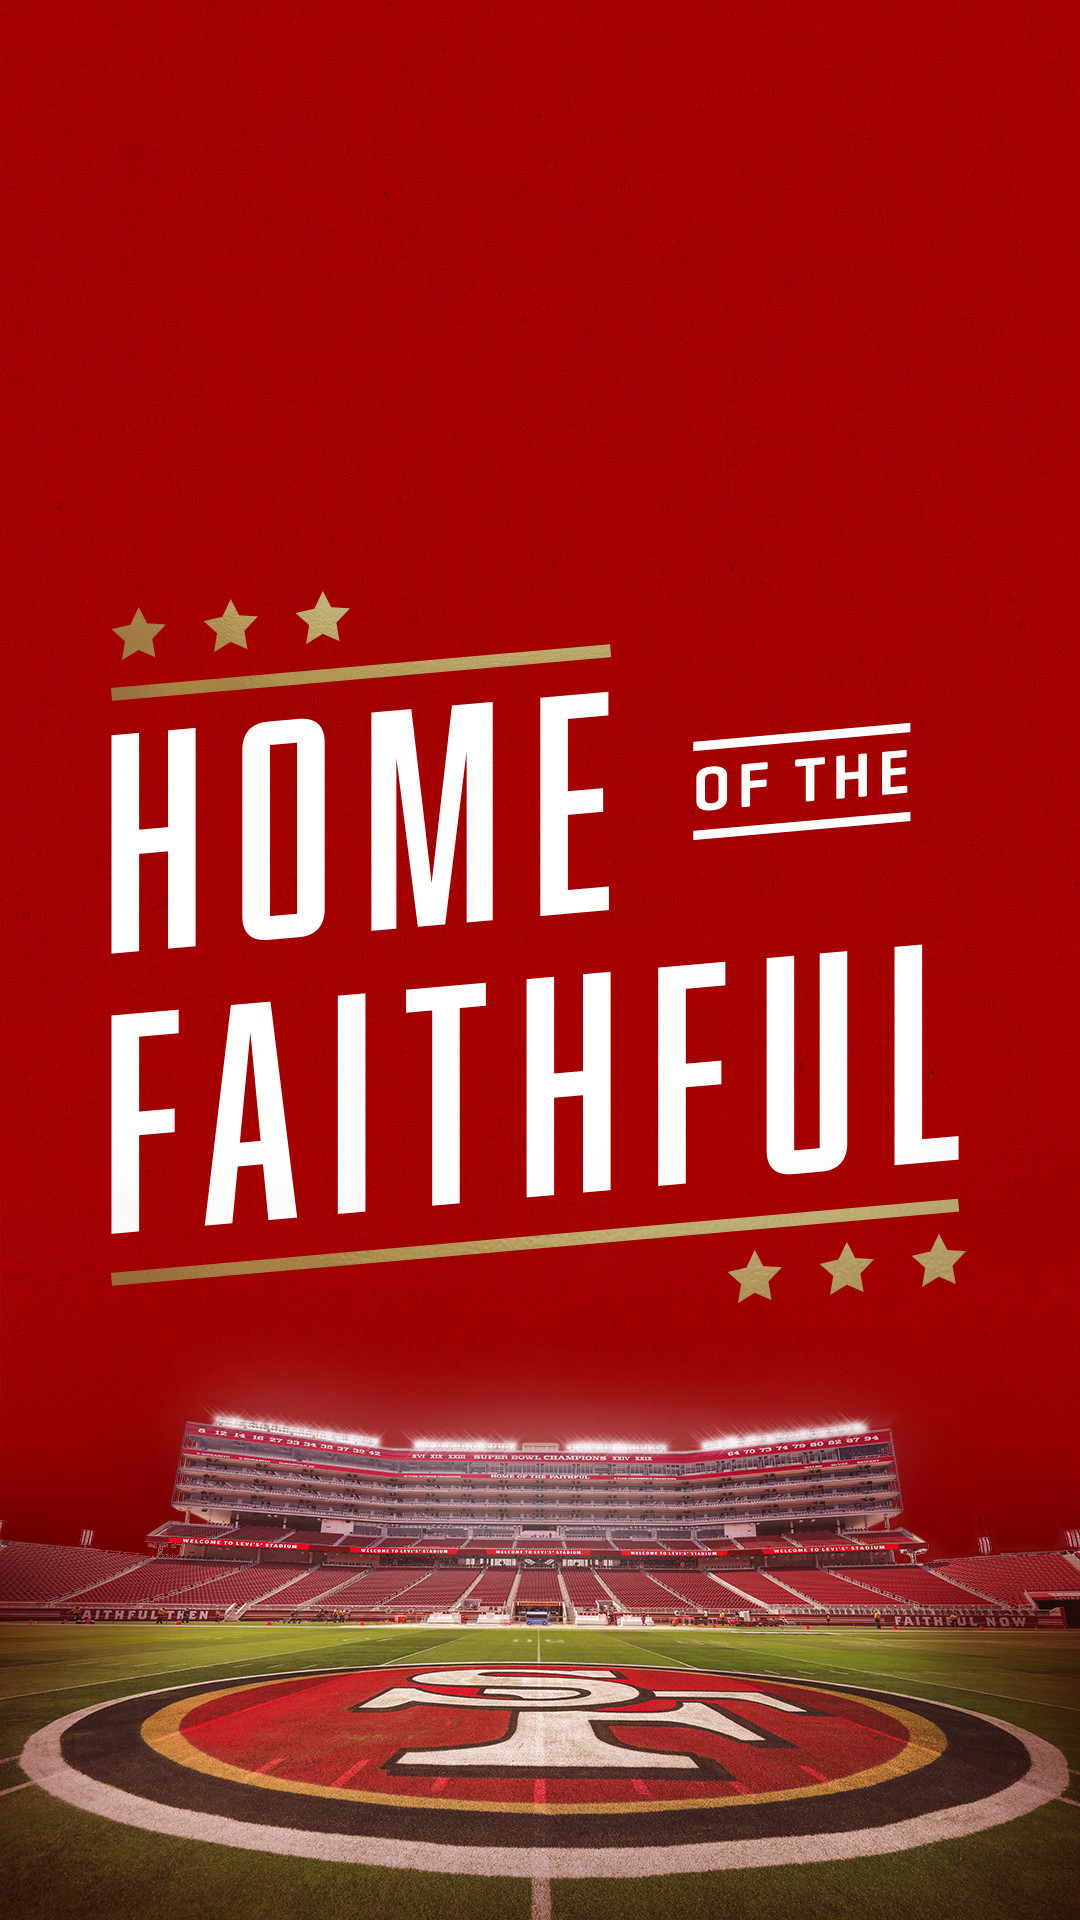 1080x1920 Home Of the Faithful